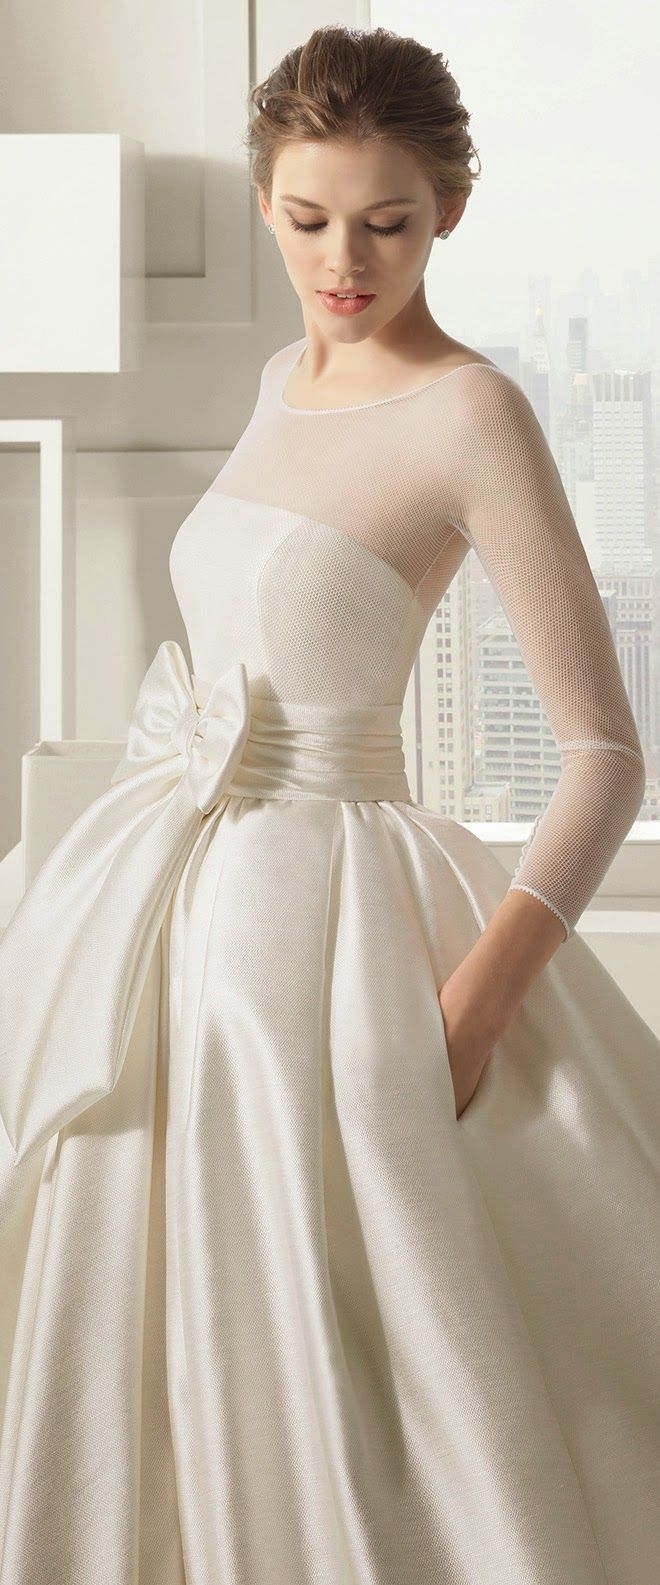 a romantic modern wedding ballgown with an illusion neckline, a large bow, long sleeves and a pleated skirt is wow